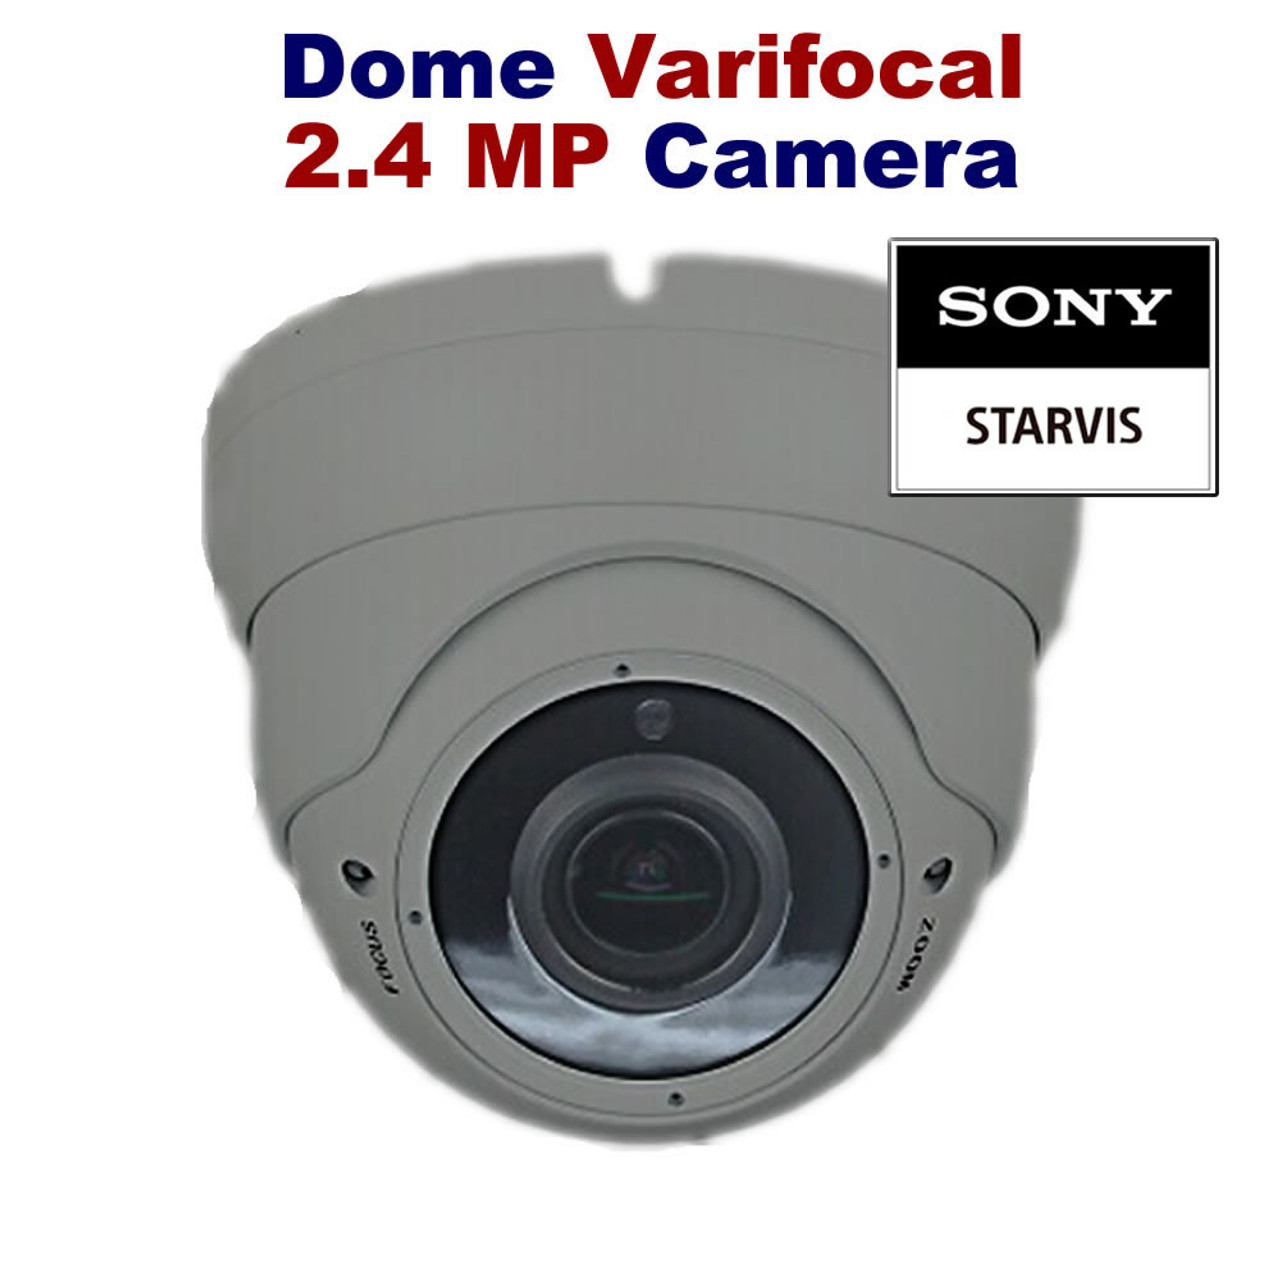 All in One HD 2.4MP 2.8-12mm Lens Varifocal Manual Zoom Outdoor IR Dome Camera